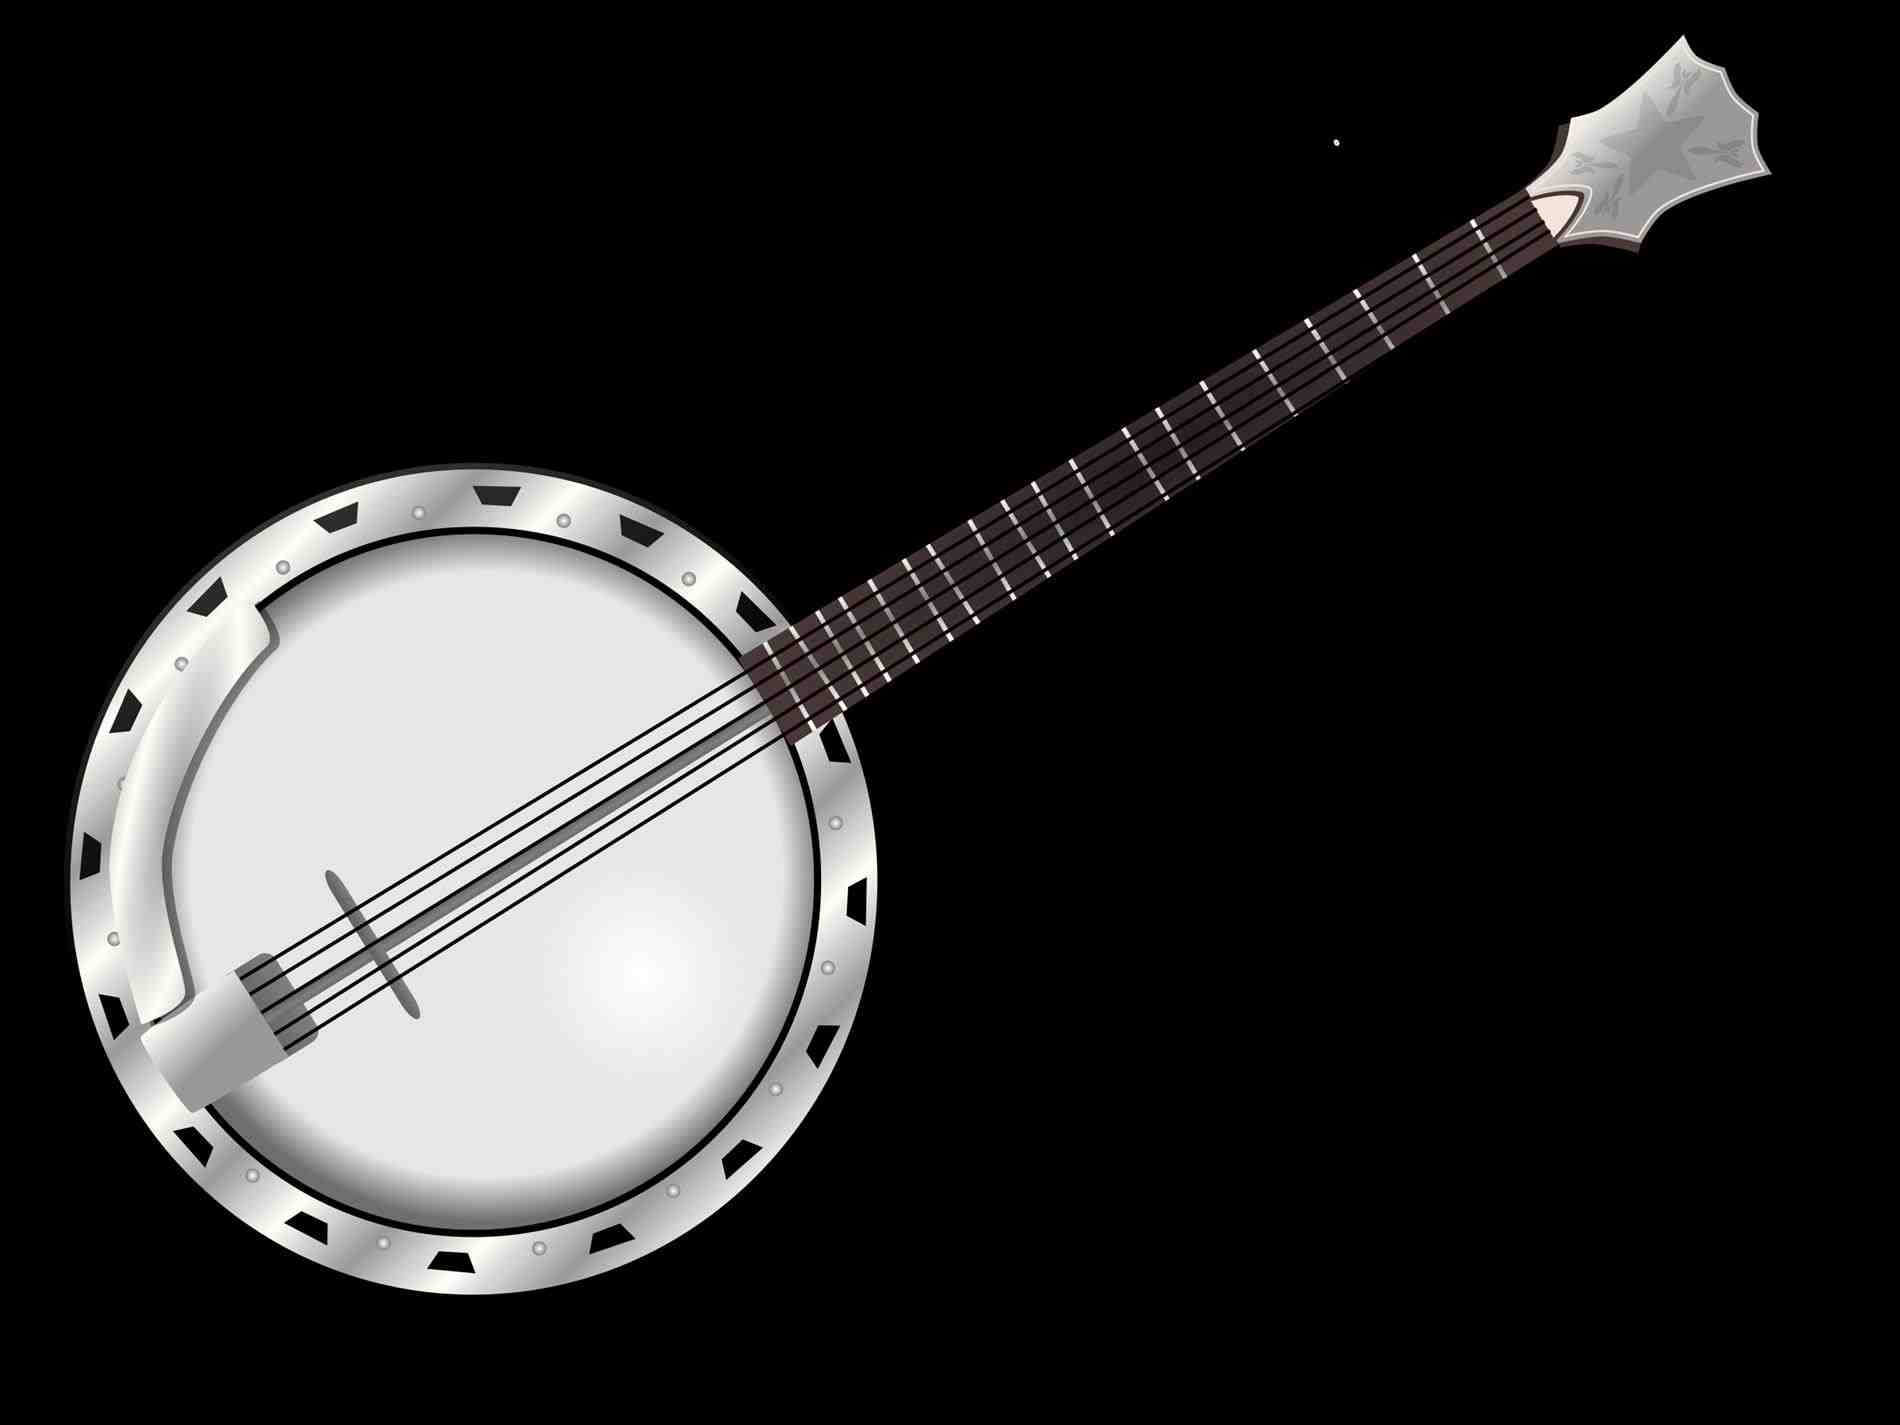 Banjo clipart musical instrument. Bigstock free of a